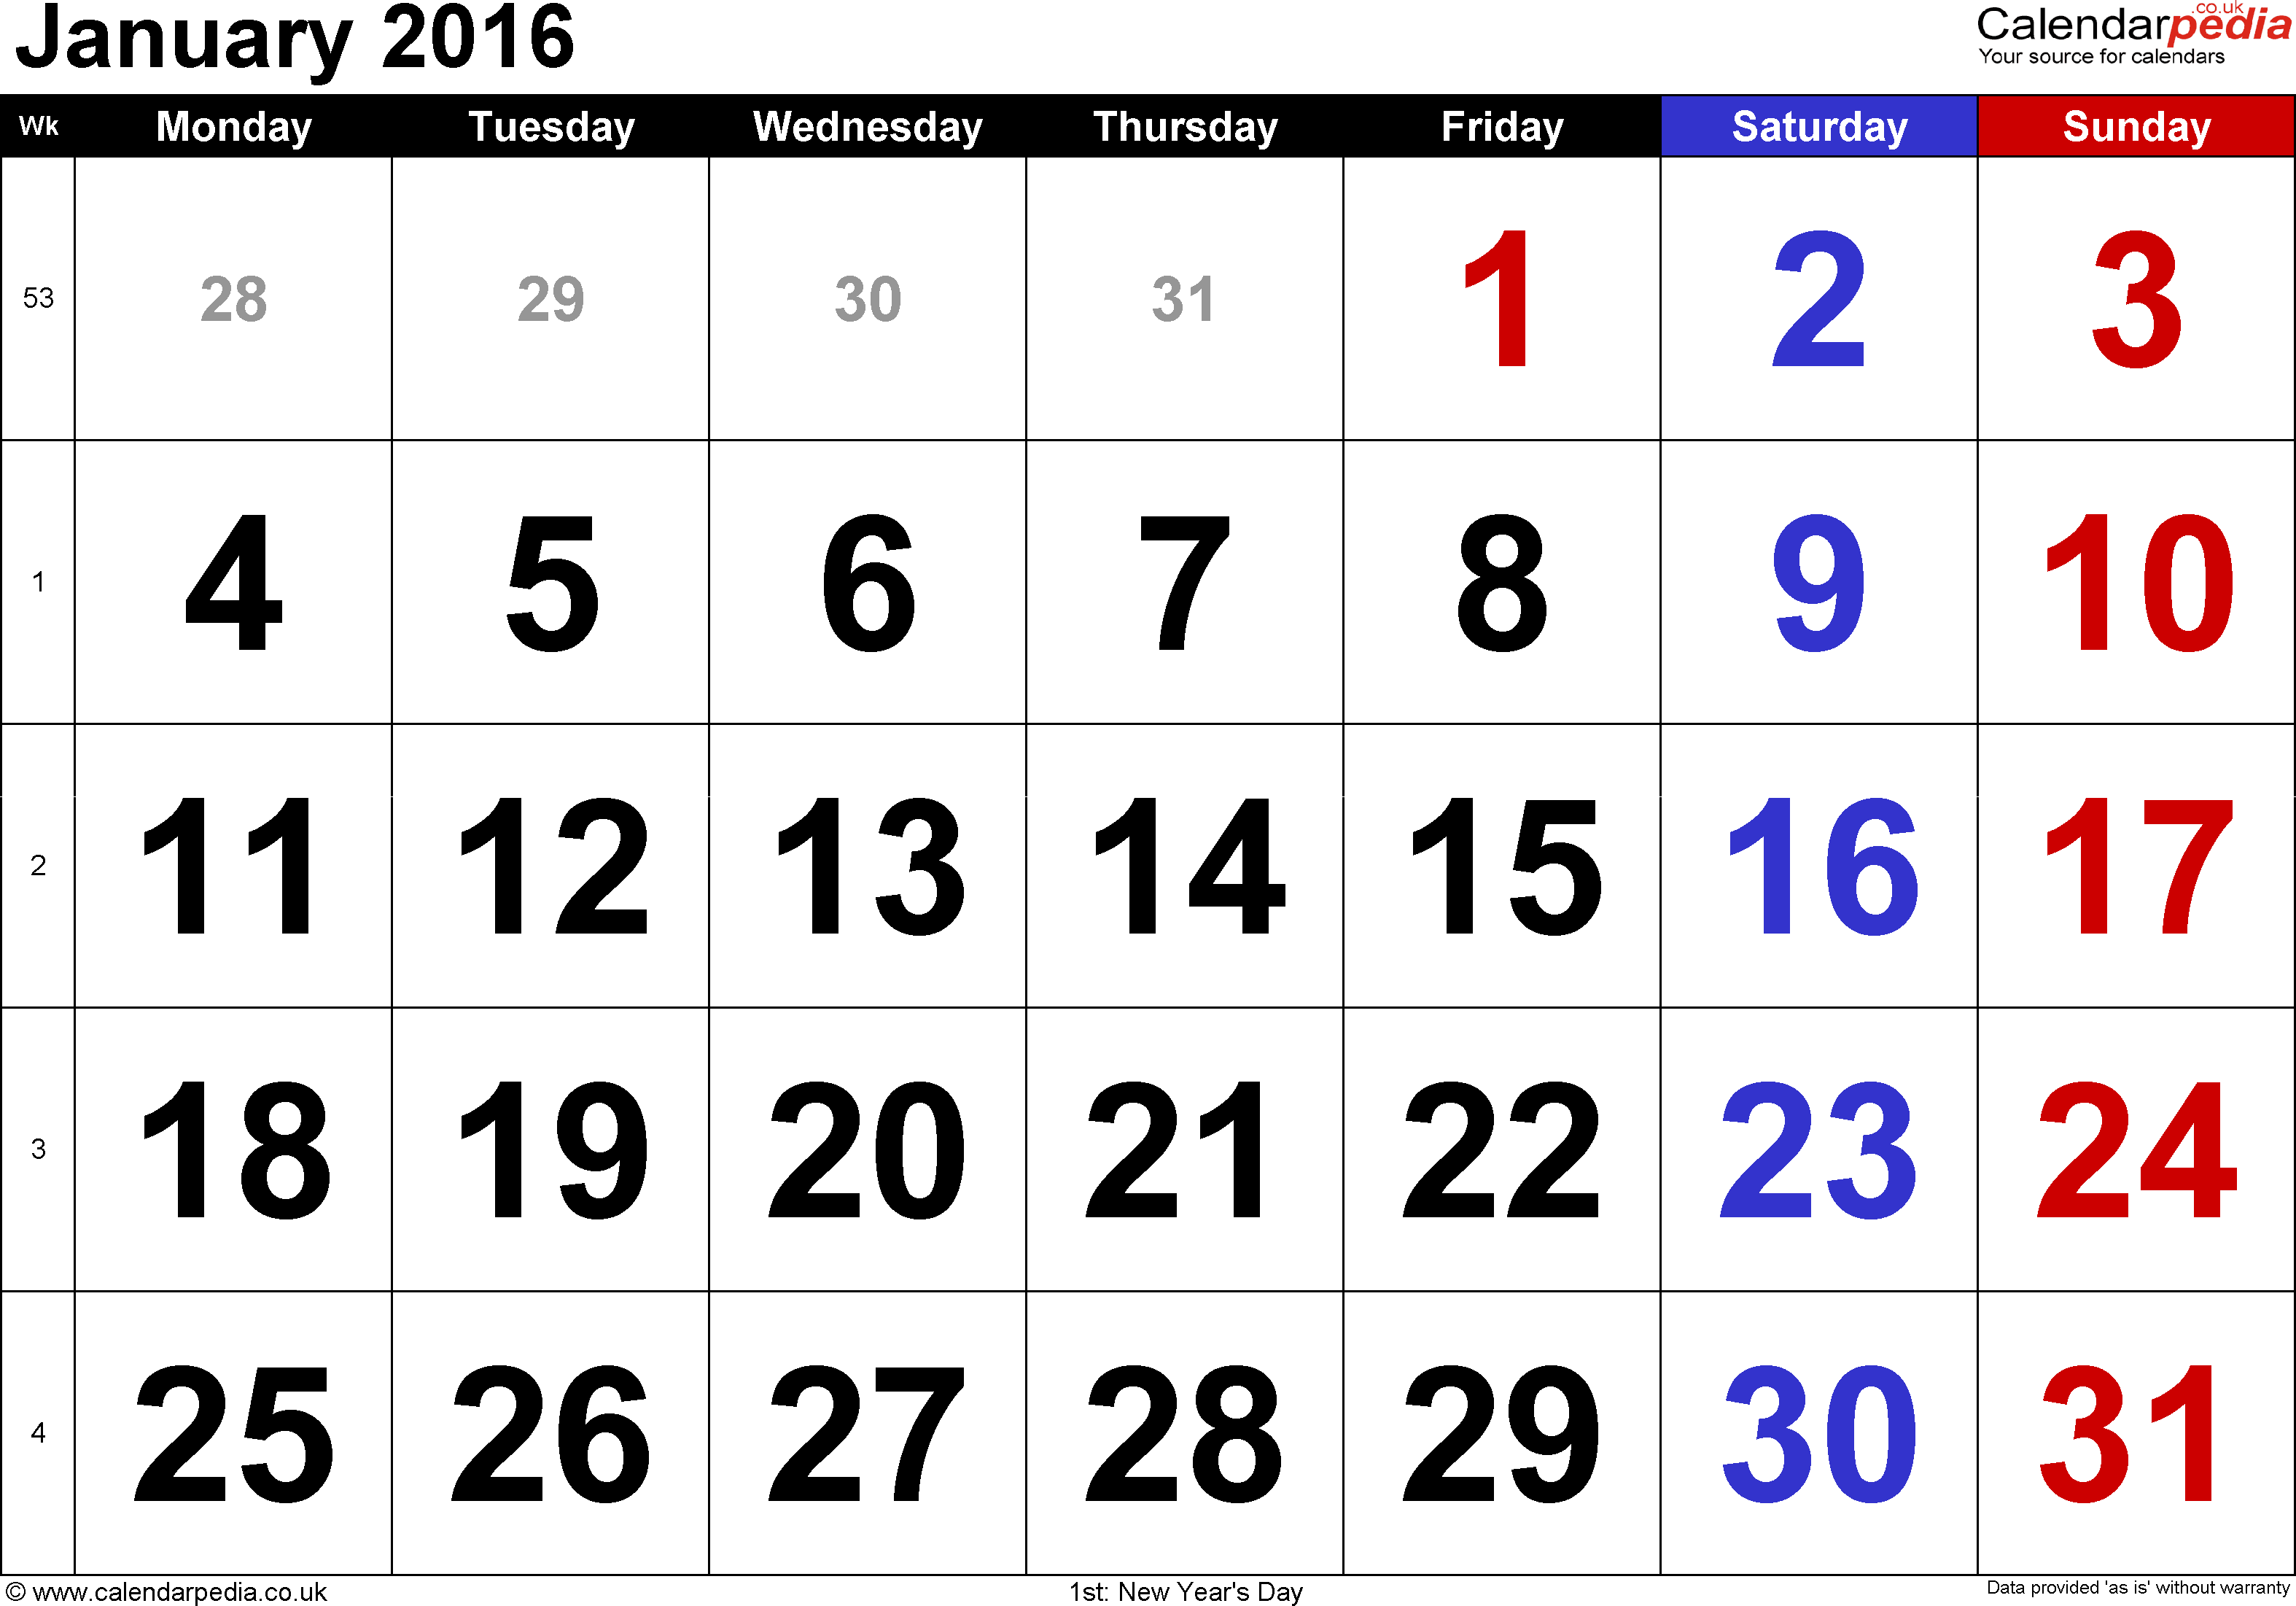 Calendar January 2016, landscape orientation, large numerals, 1 page, with UK bank holidays and week numbers